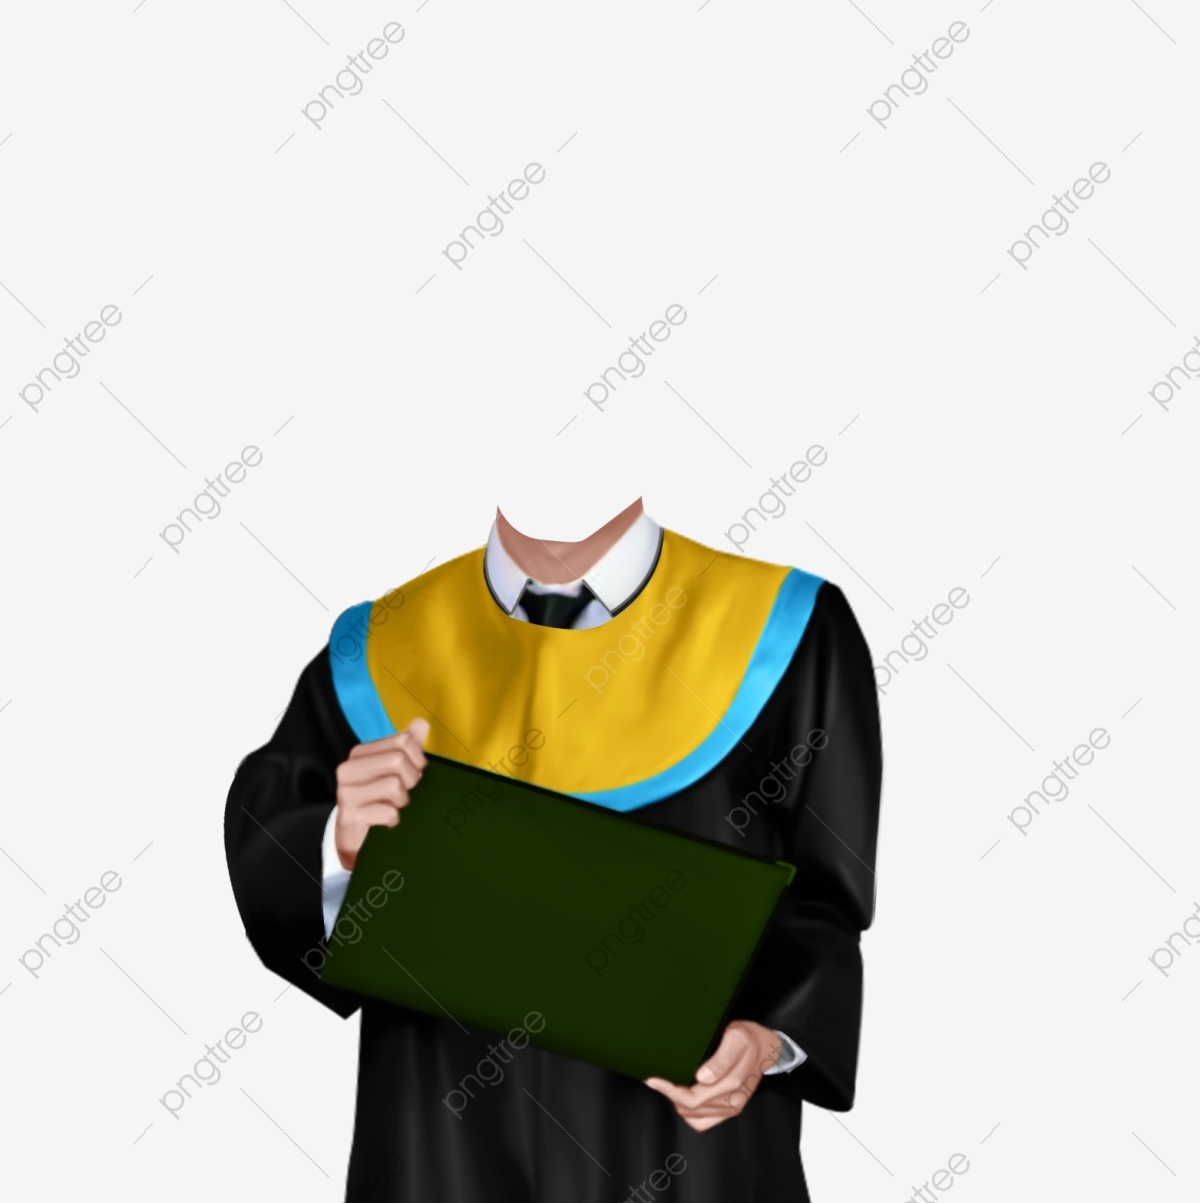 Graduation Body Karikatur 4 Karikature Wisuda Shop